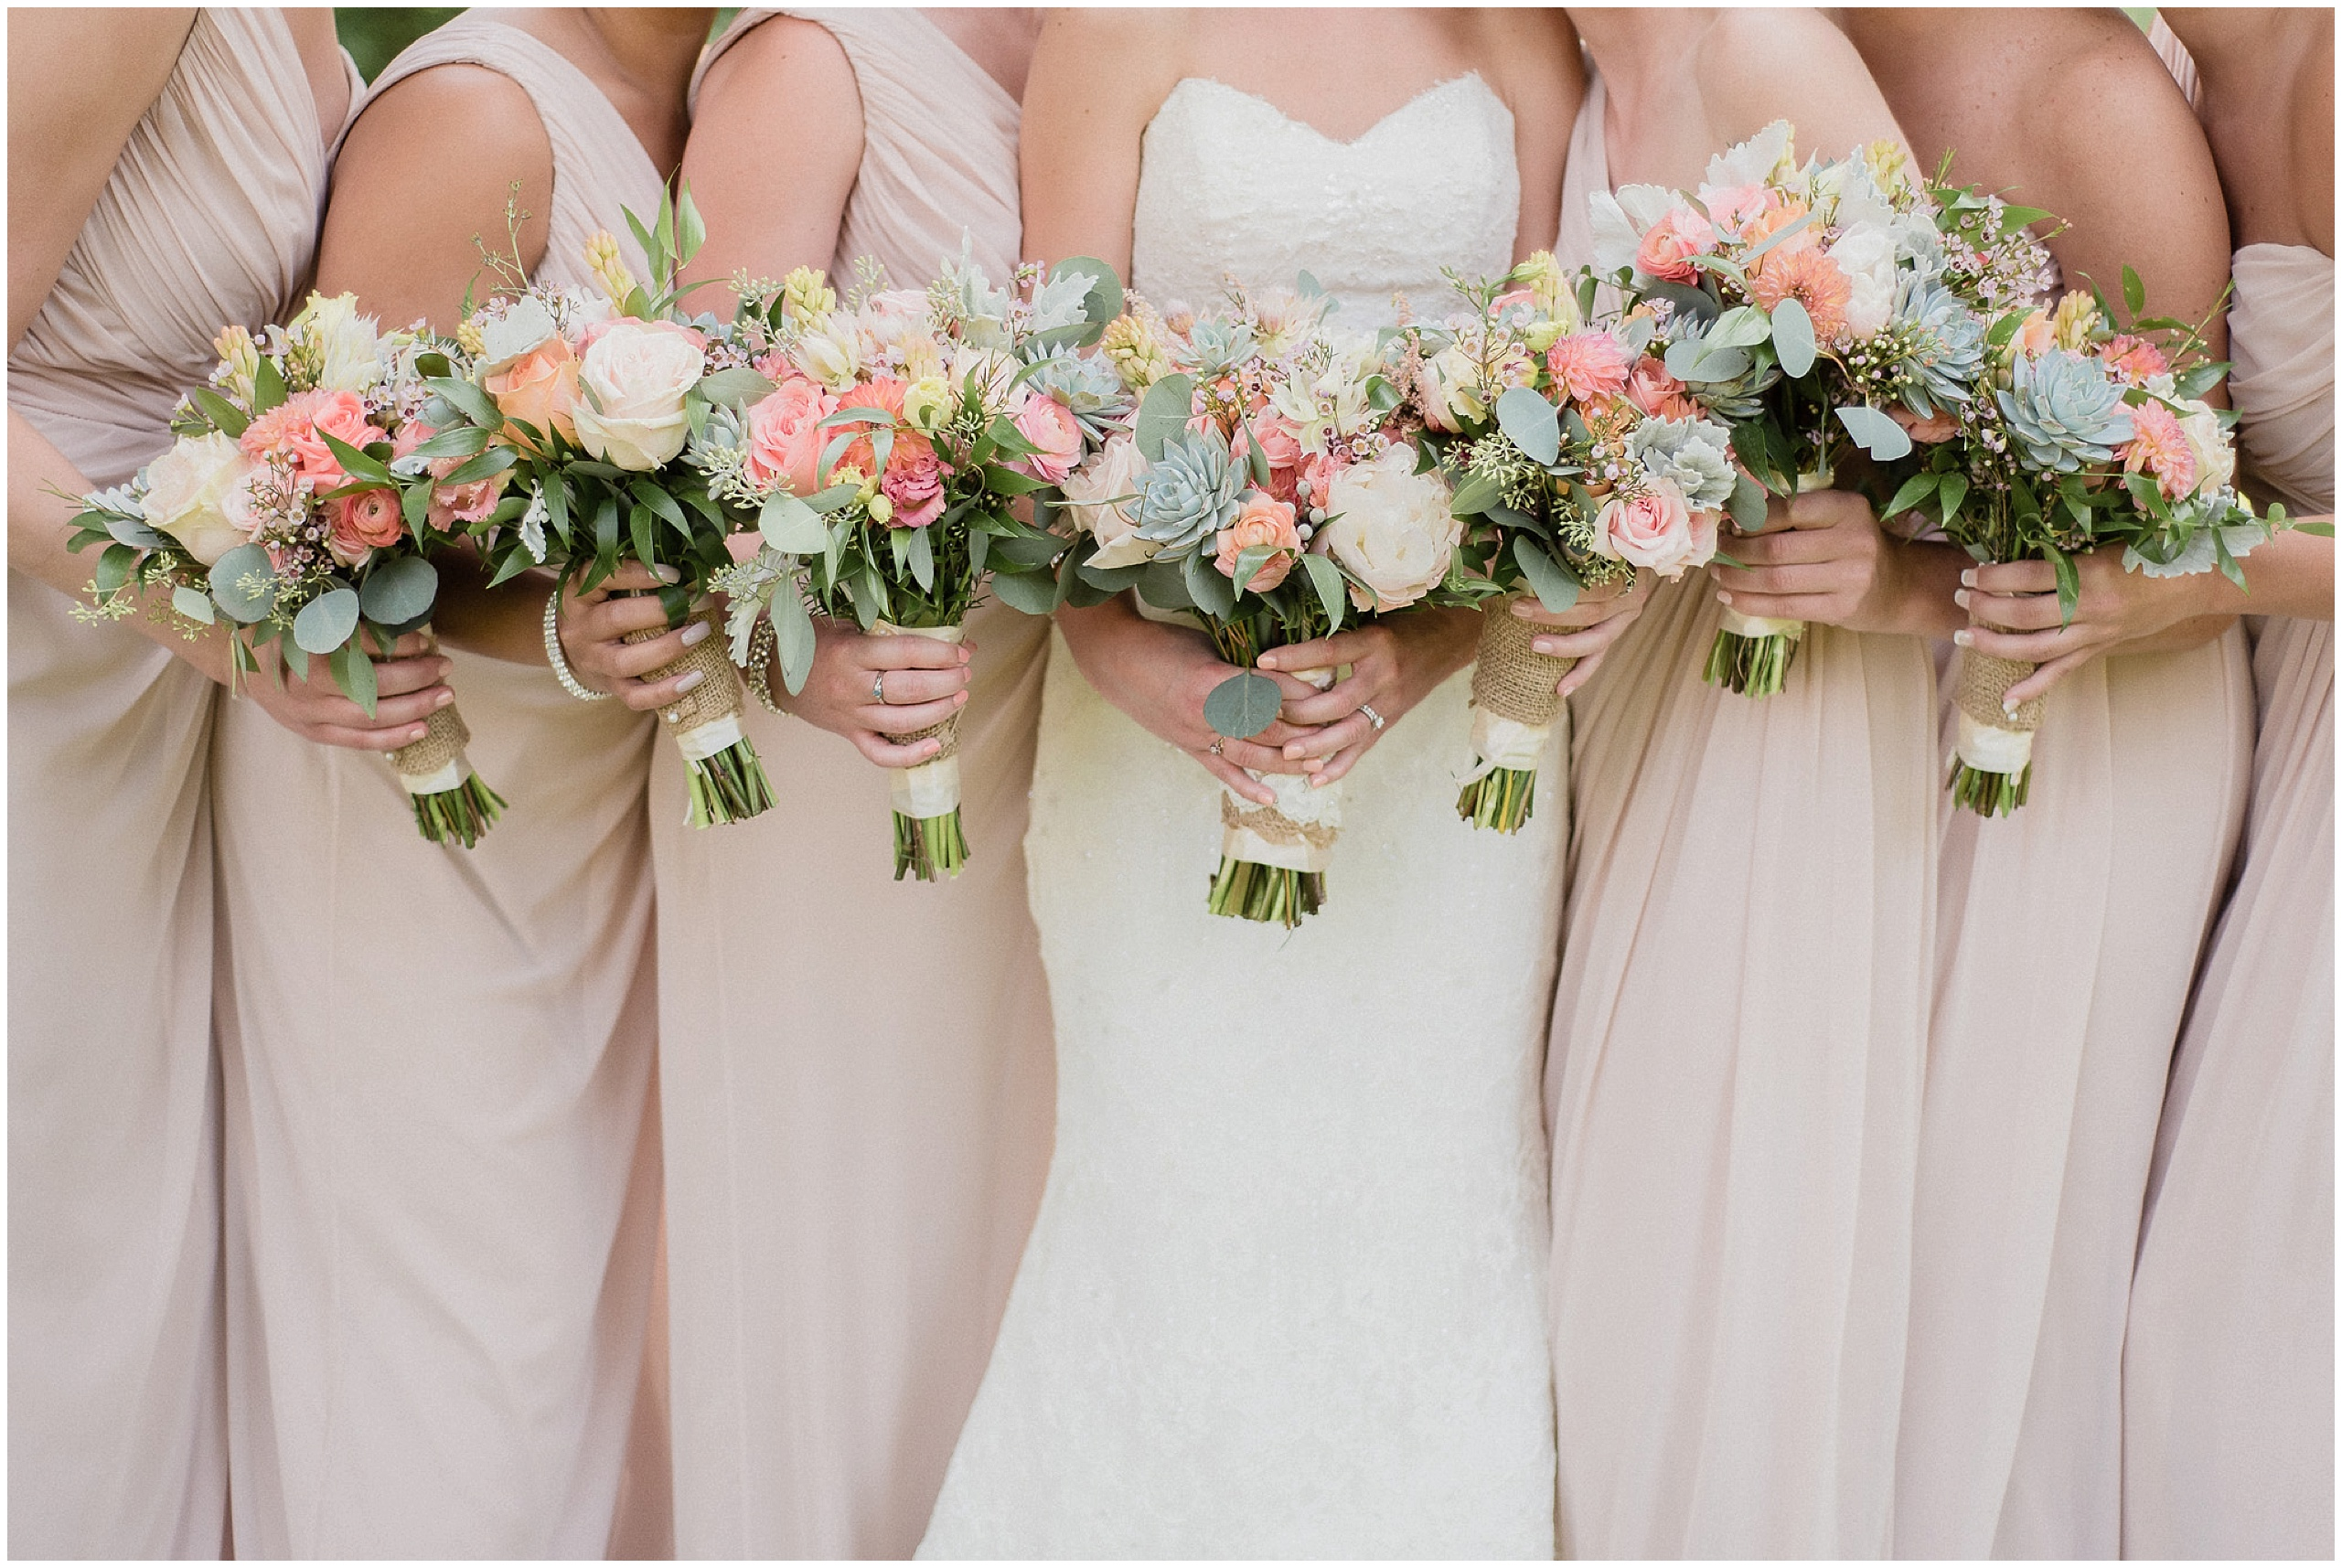 Bridesmaids bouquets with succulents, garden roses, and peonies. Photographed by Jenn Kavanagh Photography